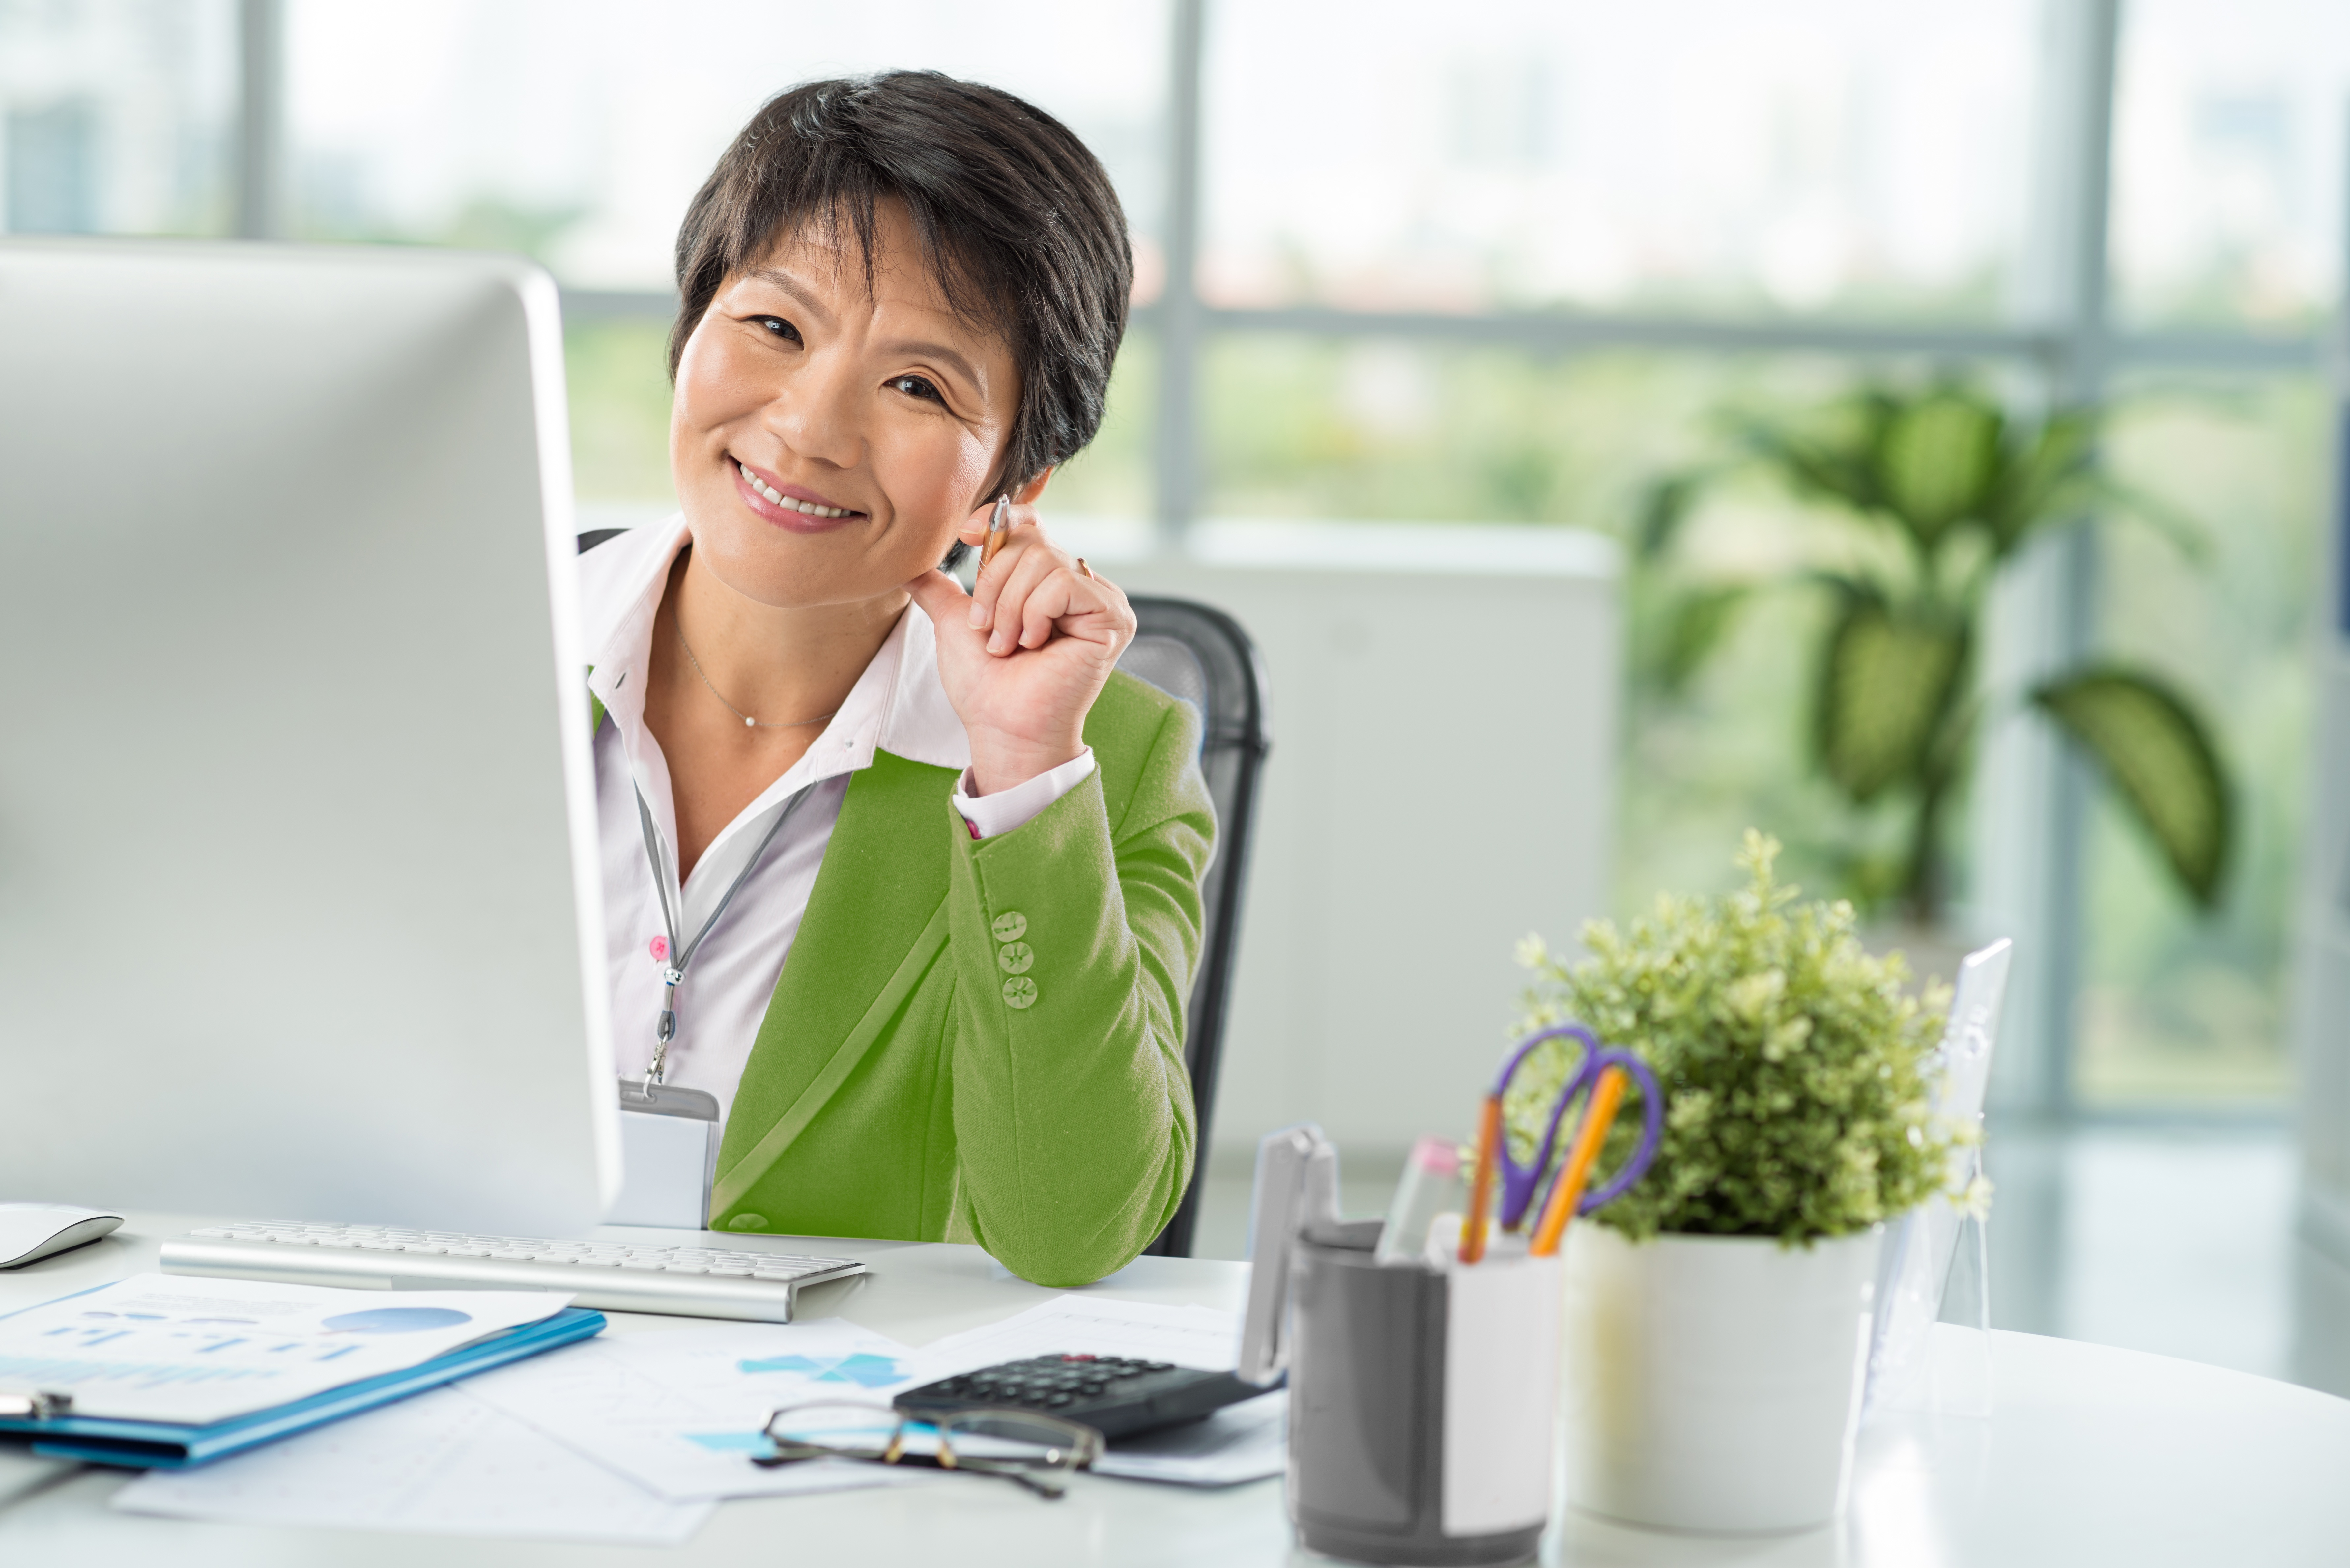 S-style green sweater female worker sitting at computer